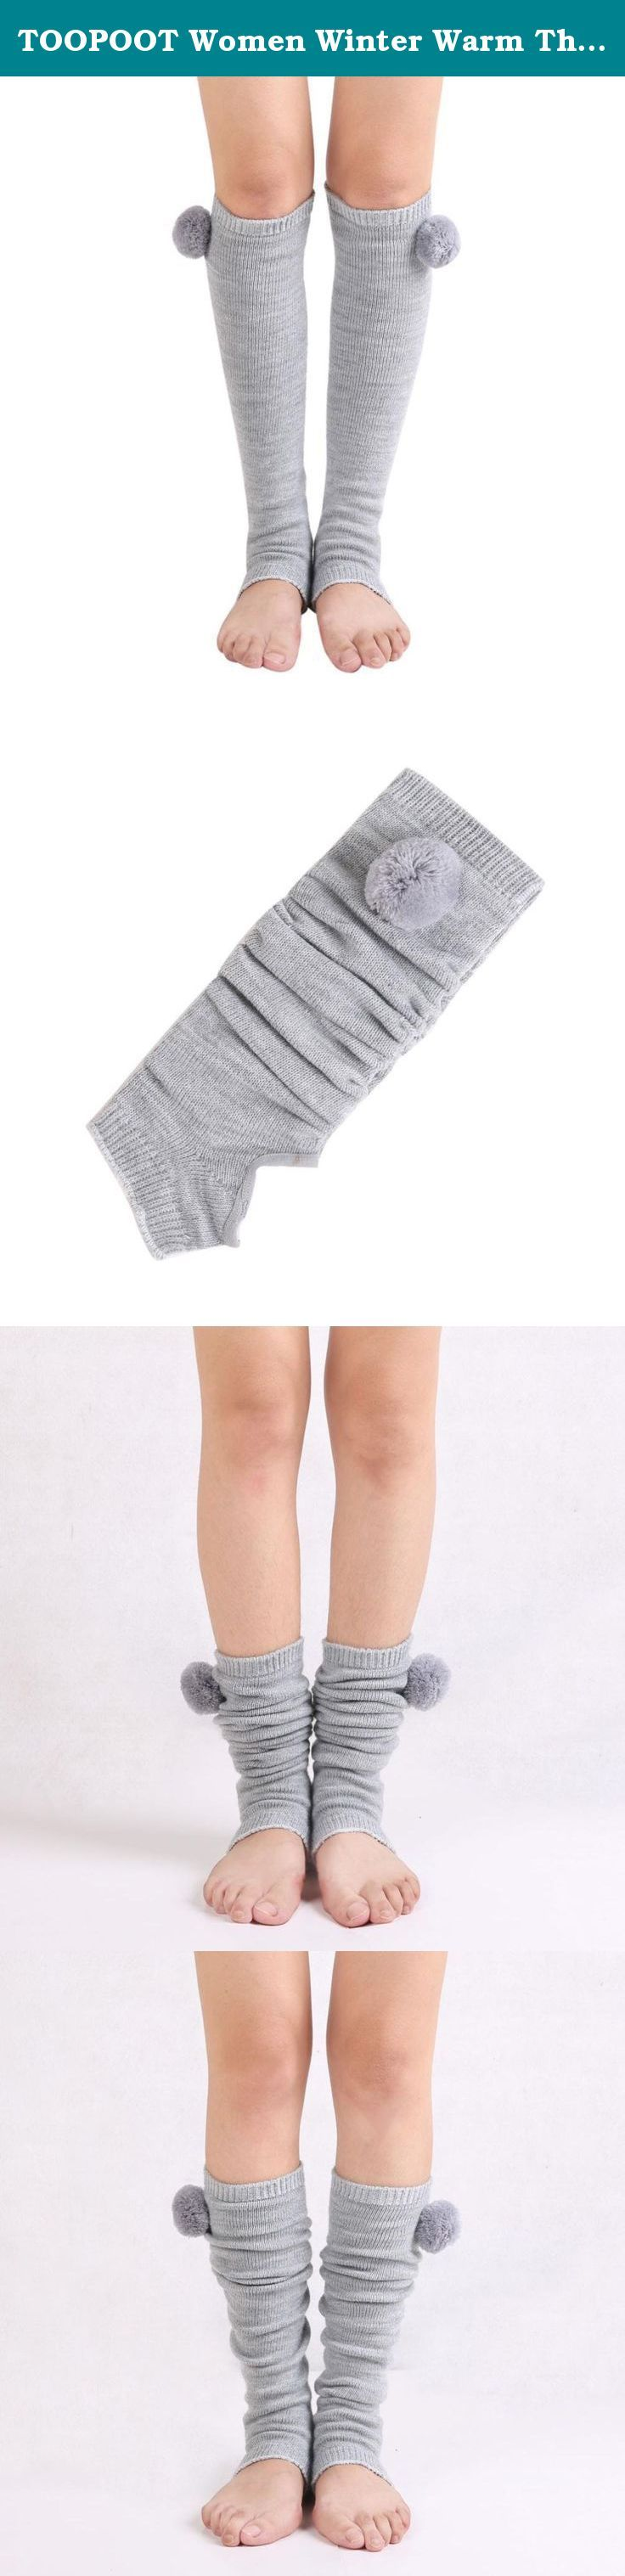 TOOPOOT Women Winter Warm Thigh High Yoga Socks Boot Cover (gray). ★★ Care: Hand wash cold and lay flat to dry Soft and comfortable ★★ We love them with rain or ankle-length boots. ★★if you are women, you could buy it for yourself, your monter, your daugther, and so on, if you are men, you could buy it for your wife, your mother, your gir friends, your duagher, and so son, They will love it, Package: 1 pair Womens Winter Thigh High Stockings Socks(Without Retail Packaging).